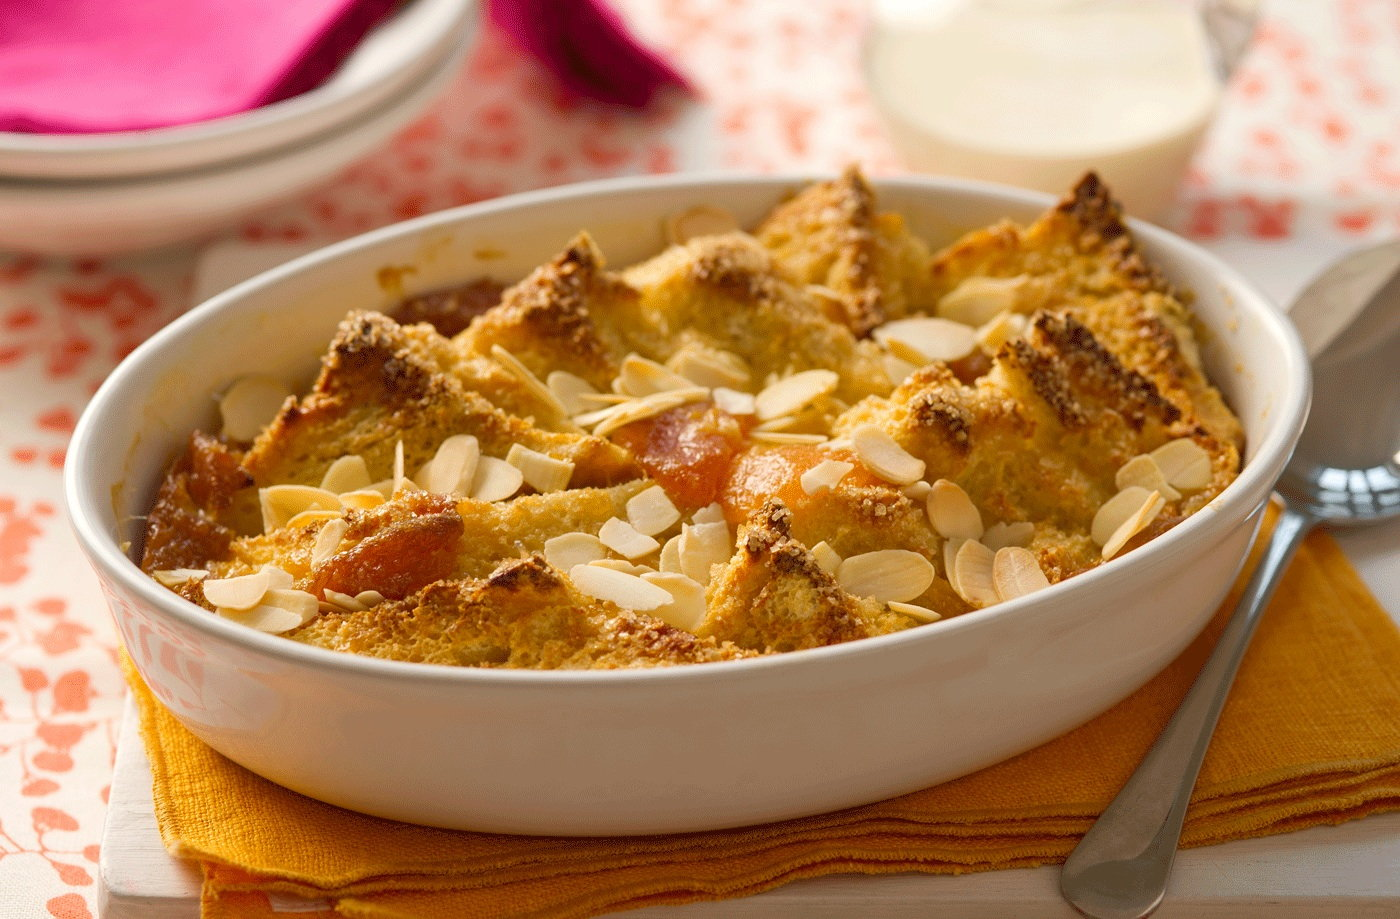 Gluten-free bread and butter pudding